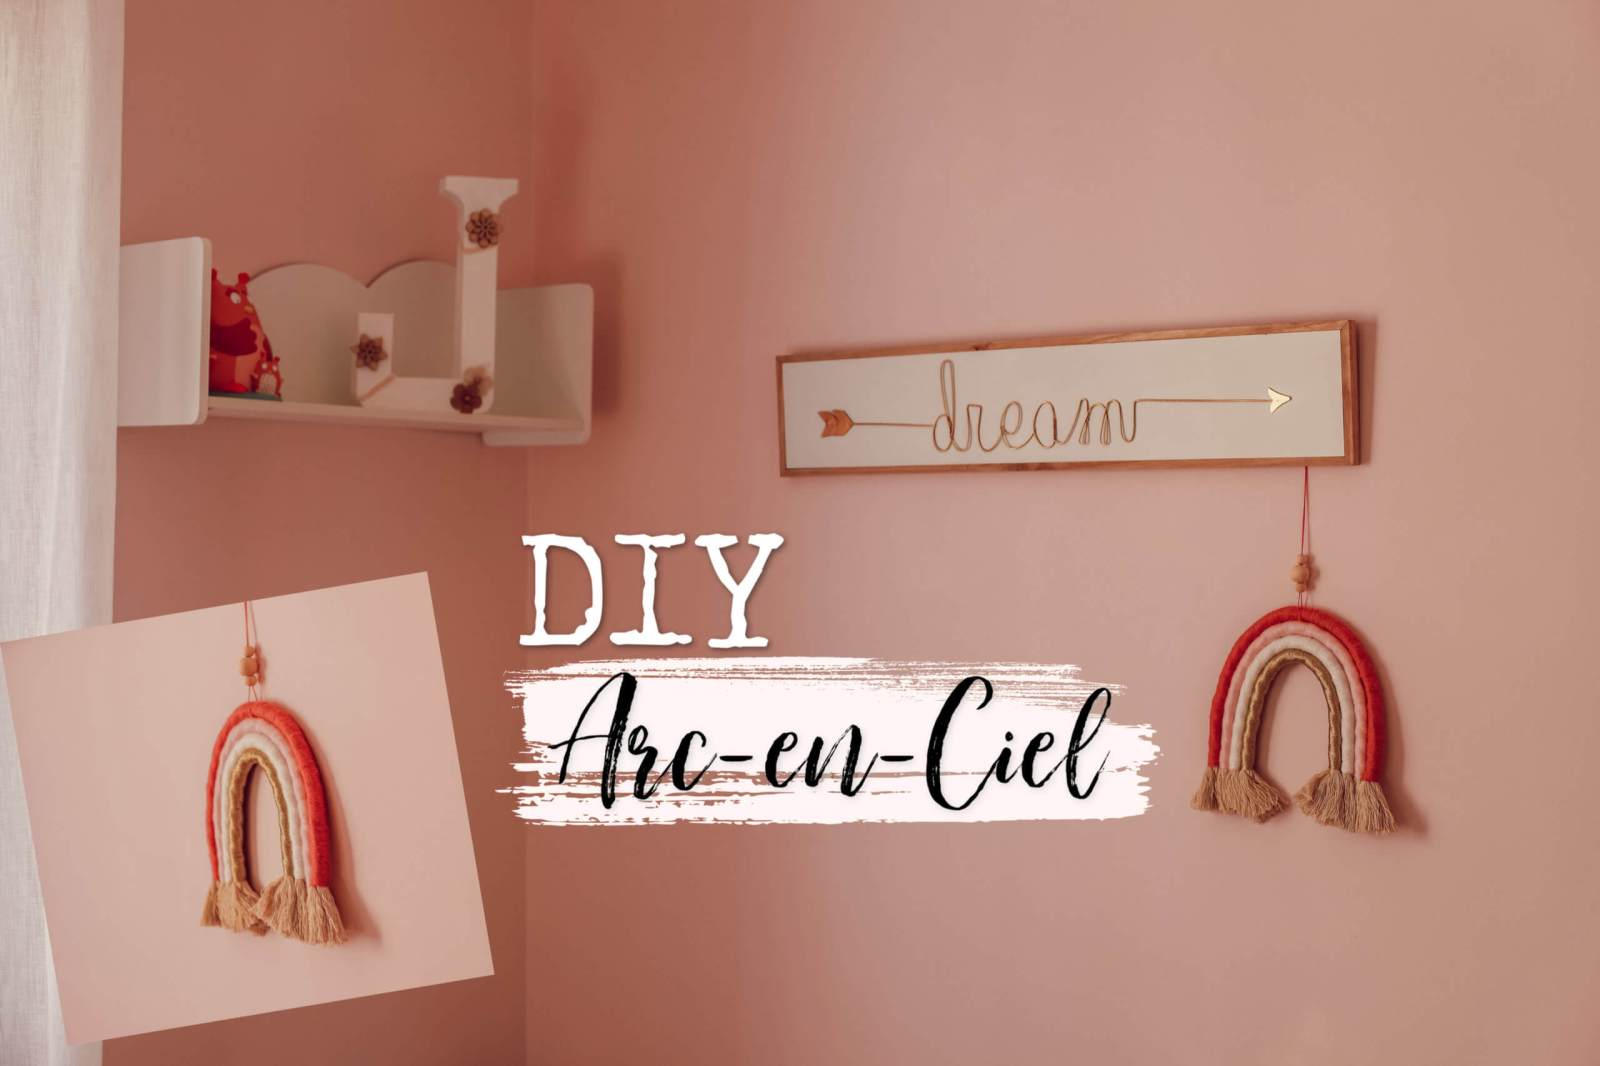 DIY ARC-EN-CIEL